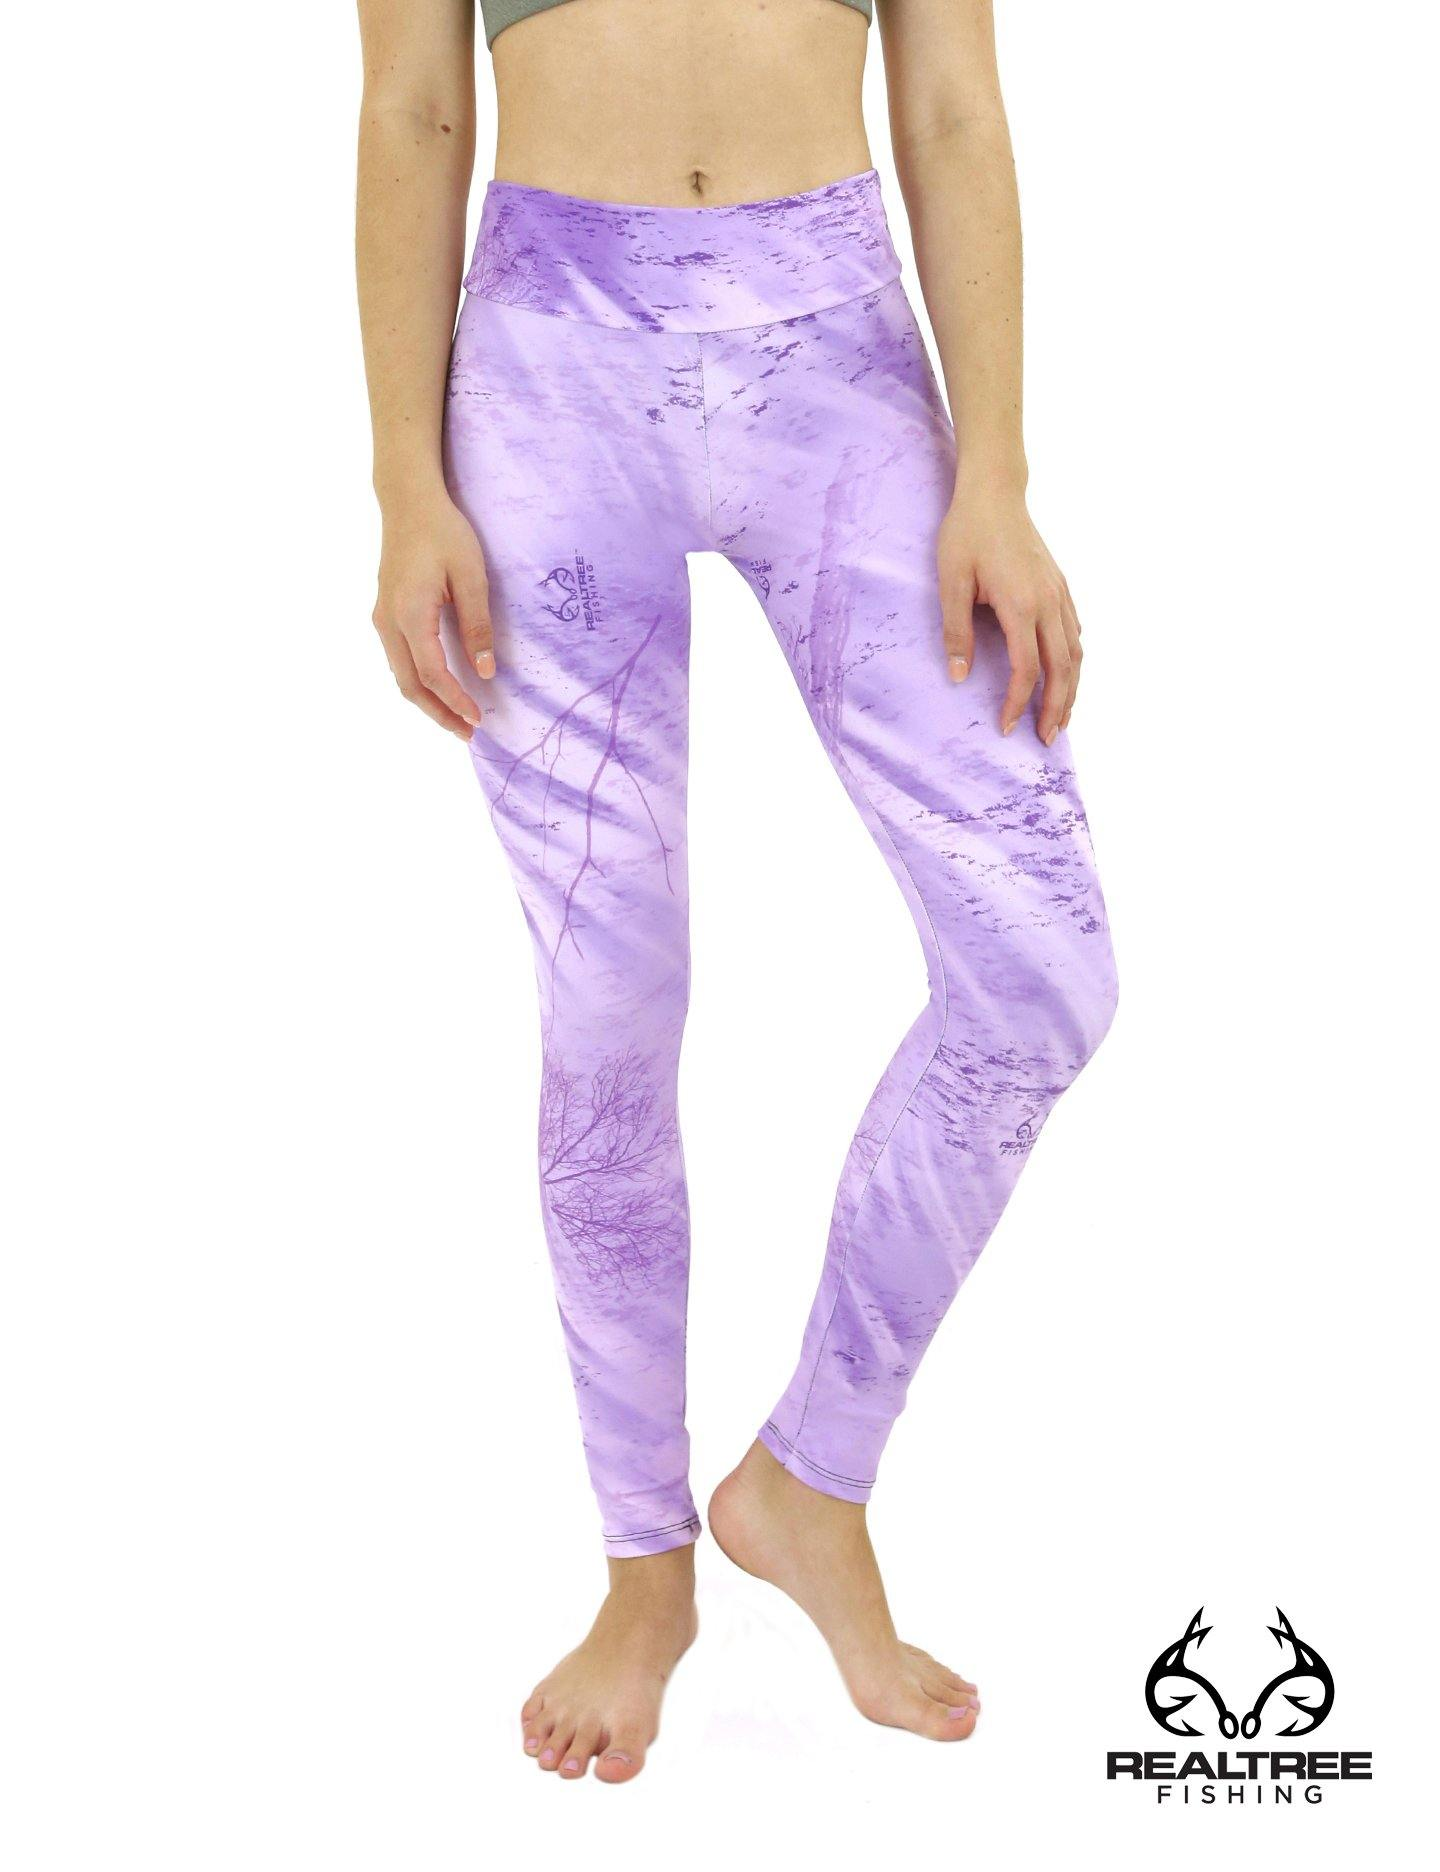 Apsara Leggings Low Waist Full Length, Realtree Fishing Light Purple